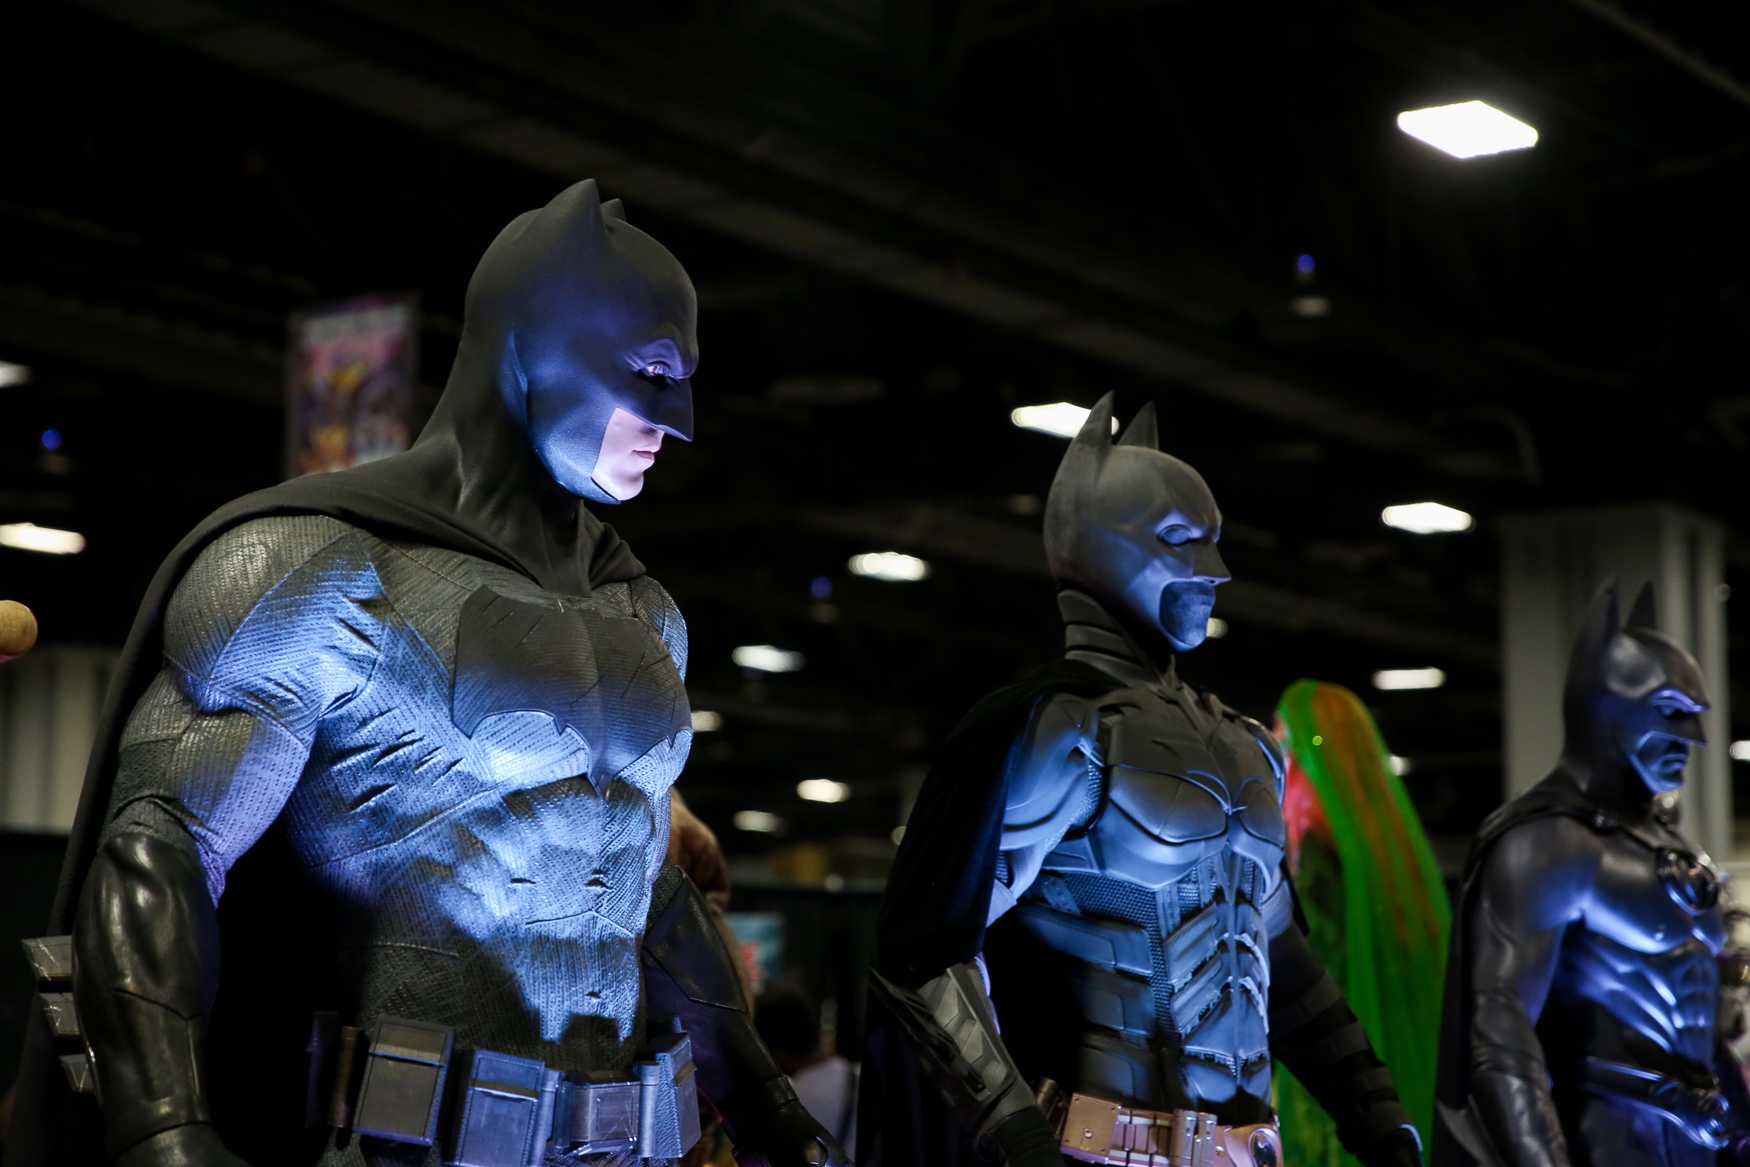 Nearly 40,000 people swarmed the Walter E. Washington Convention Center for day two of Awesome Con. The convention, which celebrates all things nerdy and geeky, featured thousands of cosplayers, a collection of Batman costumes, works from artists and more! The convention will conclude tomorrow and upwards of 80,000 people are expected to attend over Awesome Con's three-day run. (Amanda Andrade-Rhoades/DC Refined)